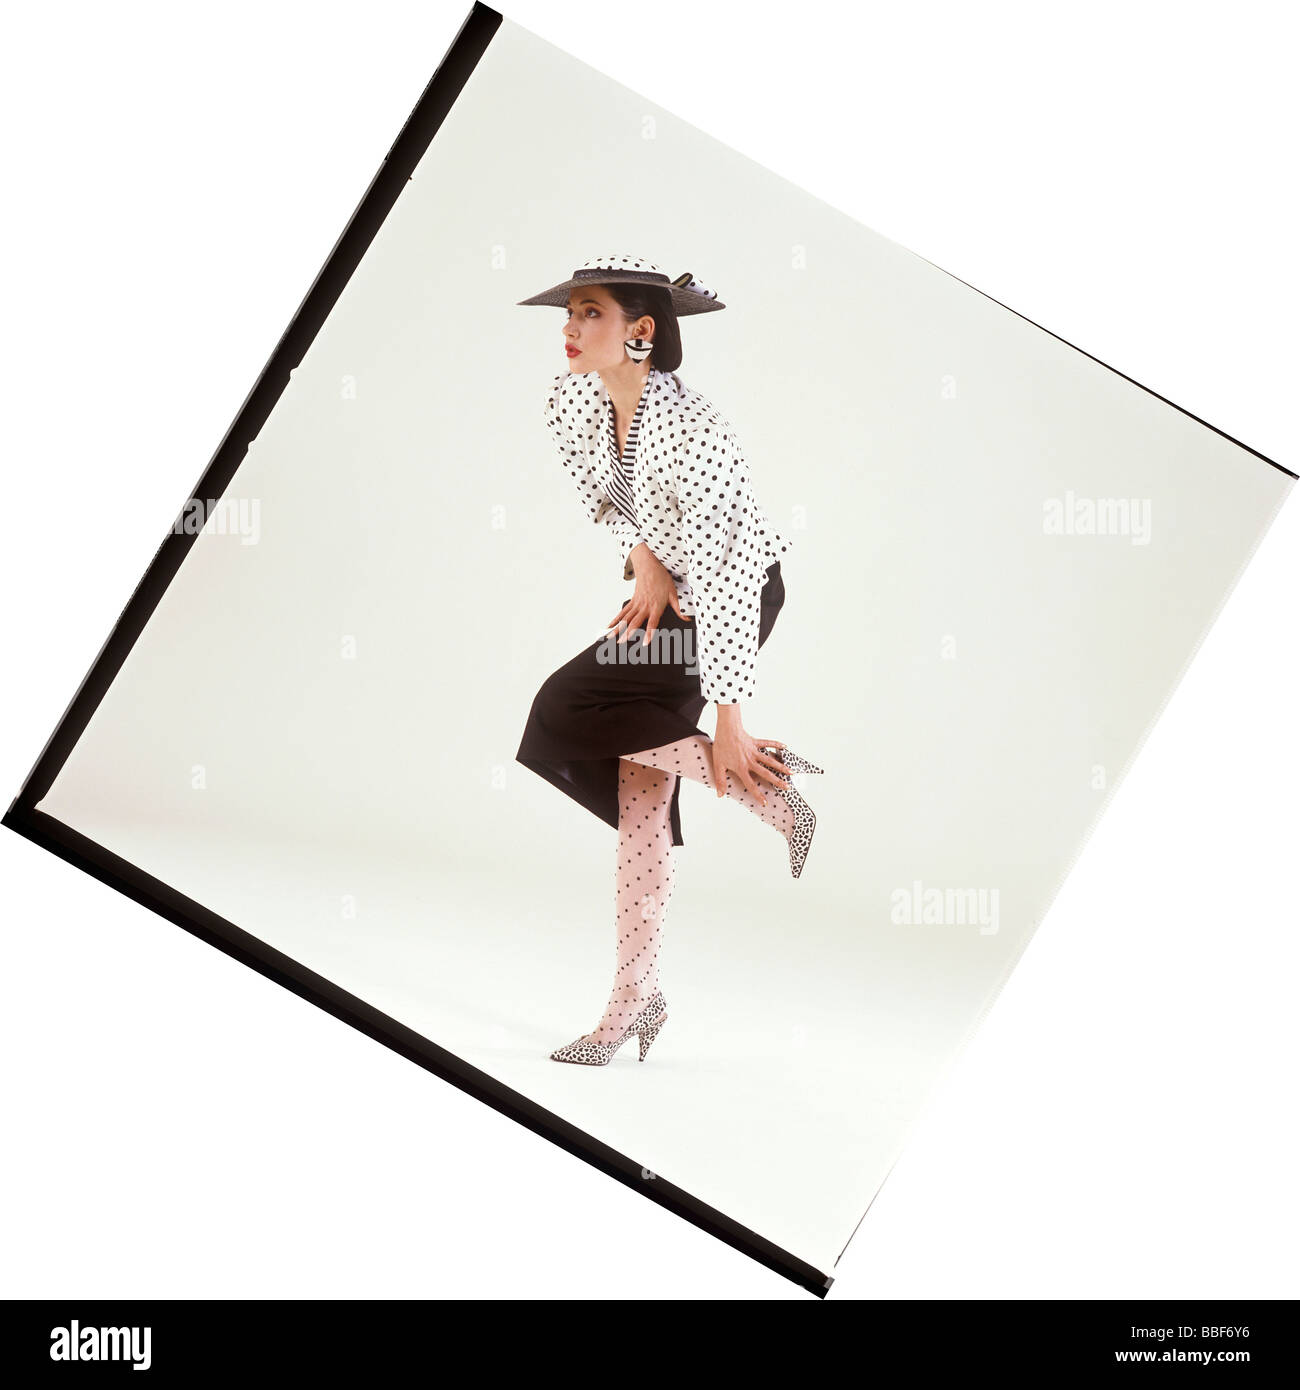 clip image retro fashion based on student research fashion and design project - Stock Image